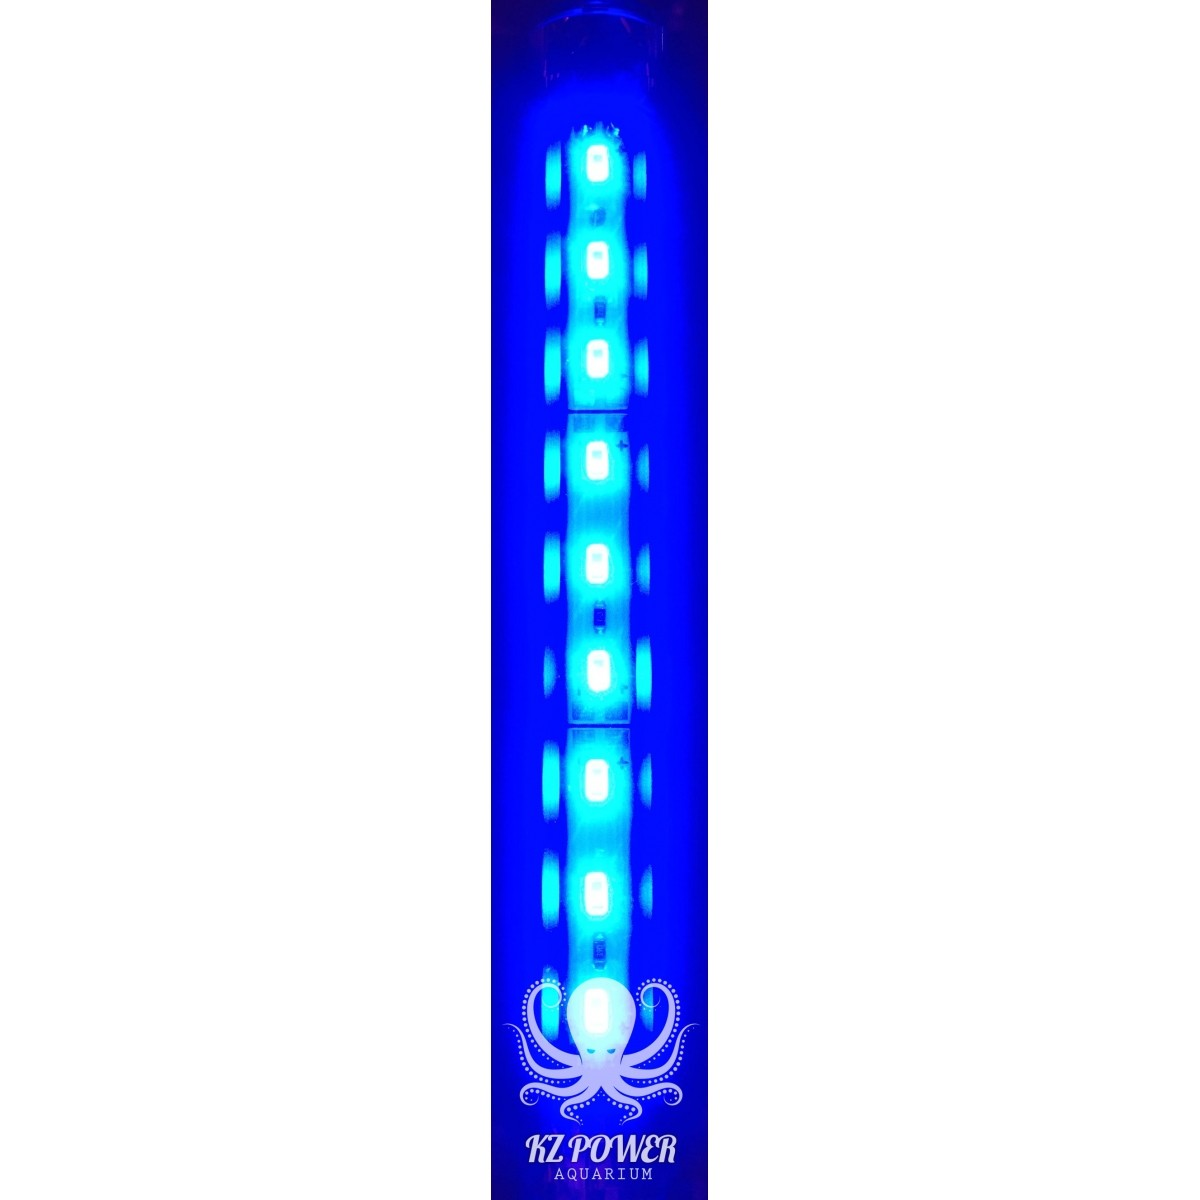 Luminaria Led Aqualumi Azul 65cm + Fonte Bivolt  - KZ Power